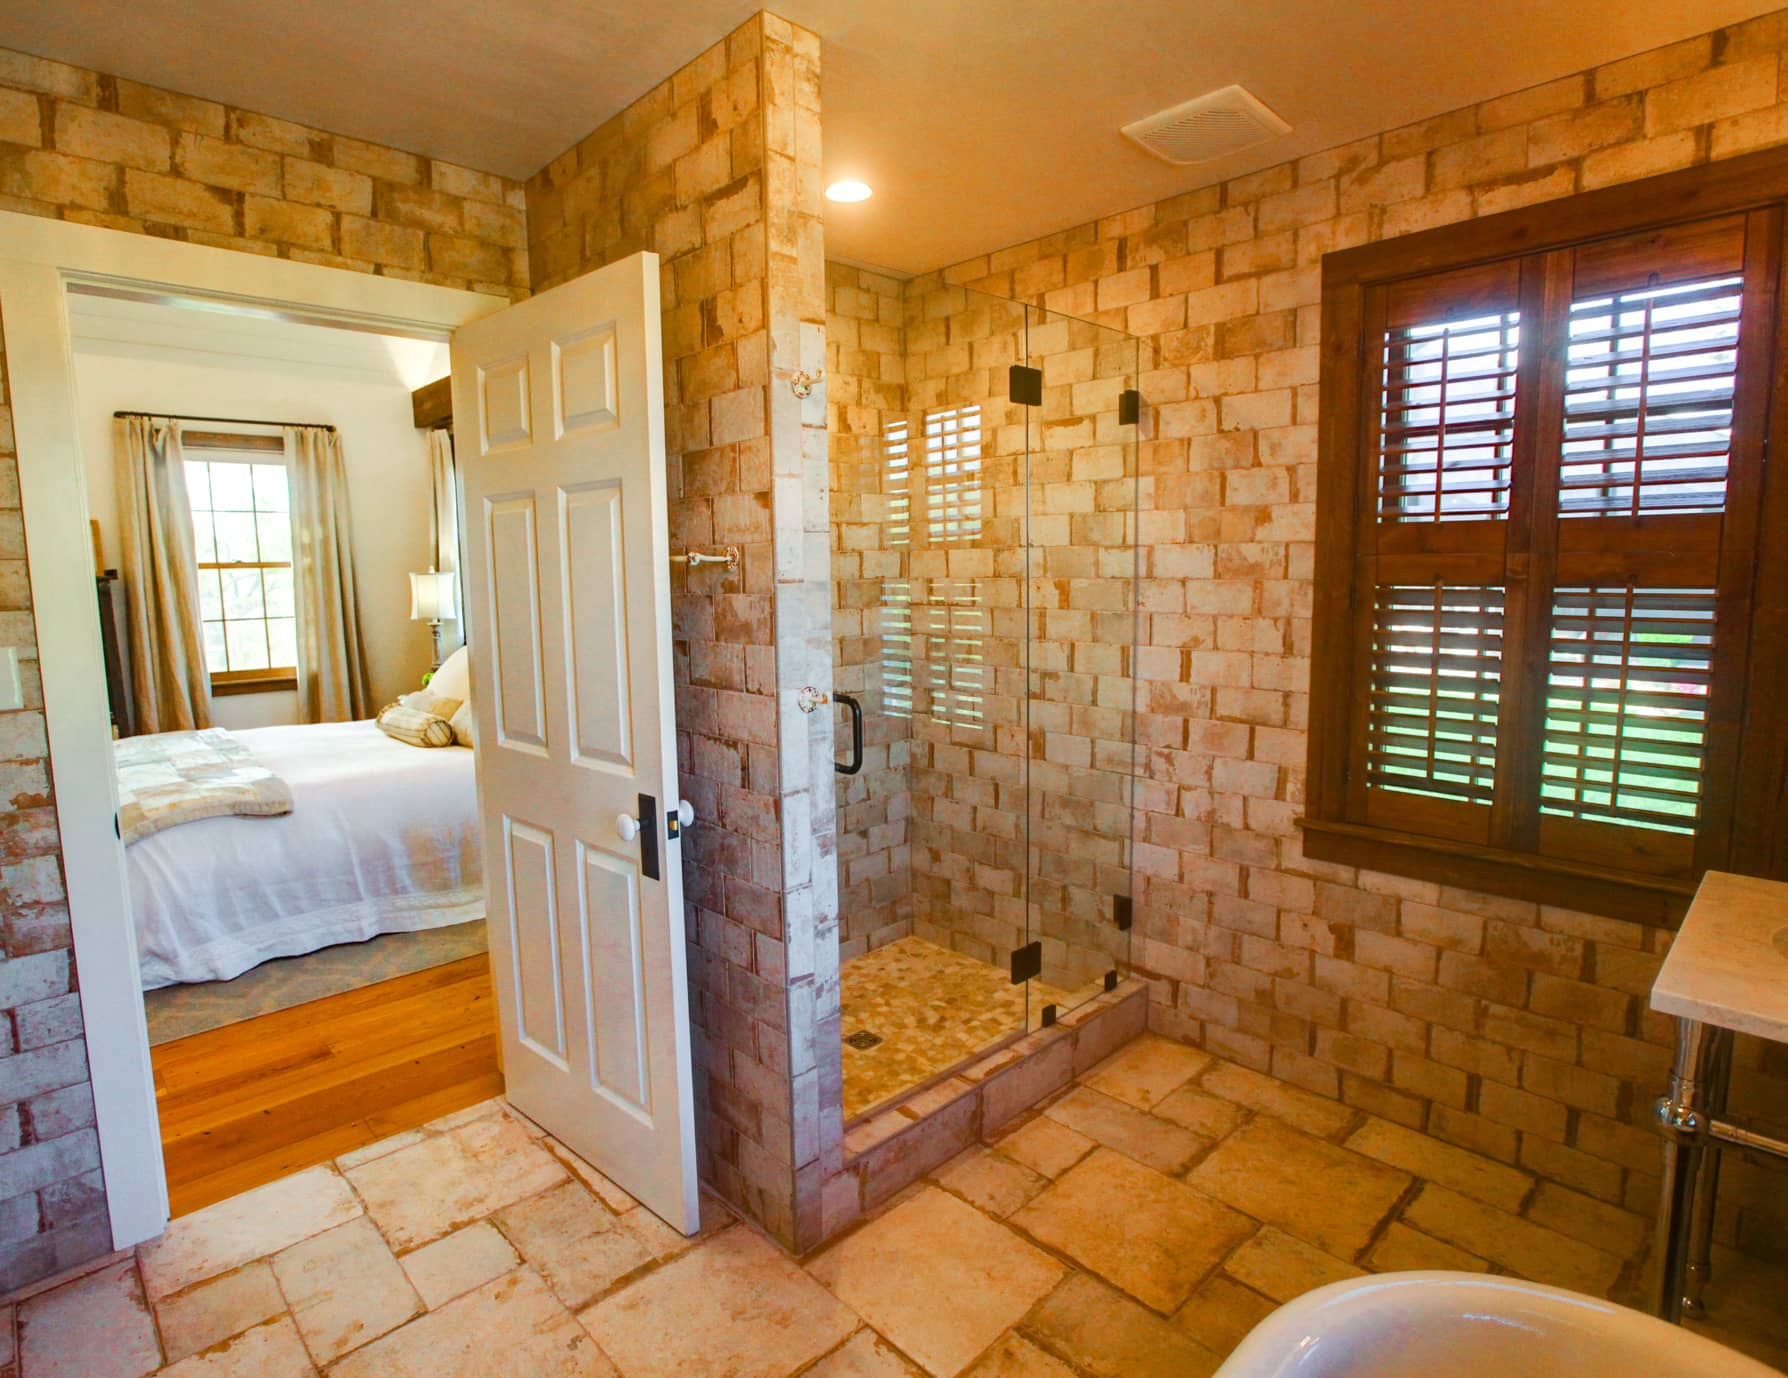 Bathroom with tile floors and a walk-in shower at a Virginia B&B